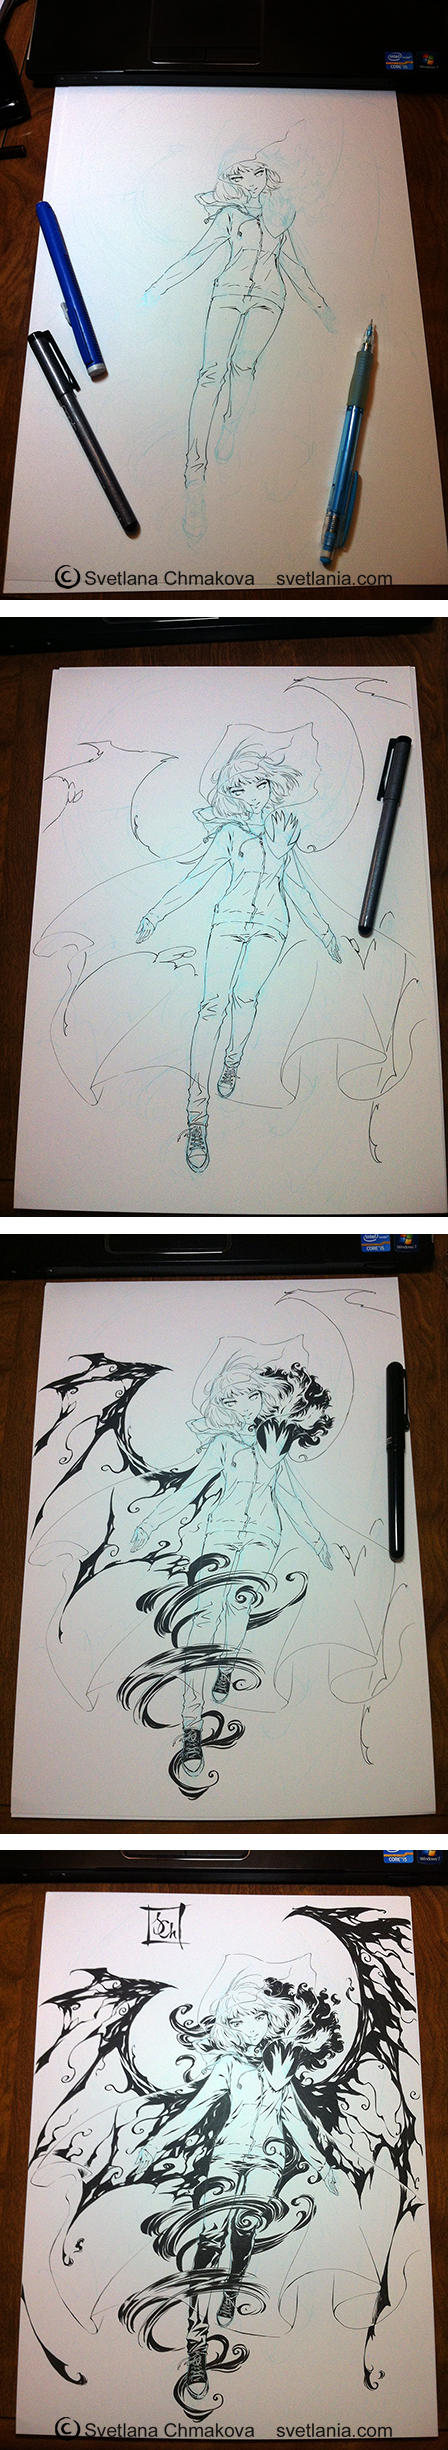 Inking Process for Nightschool print by svetlania